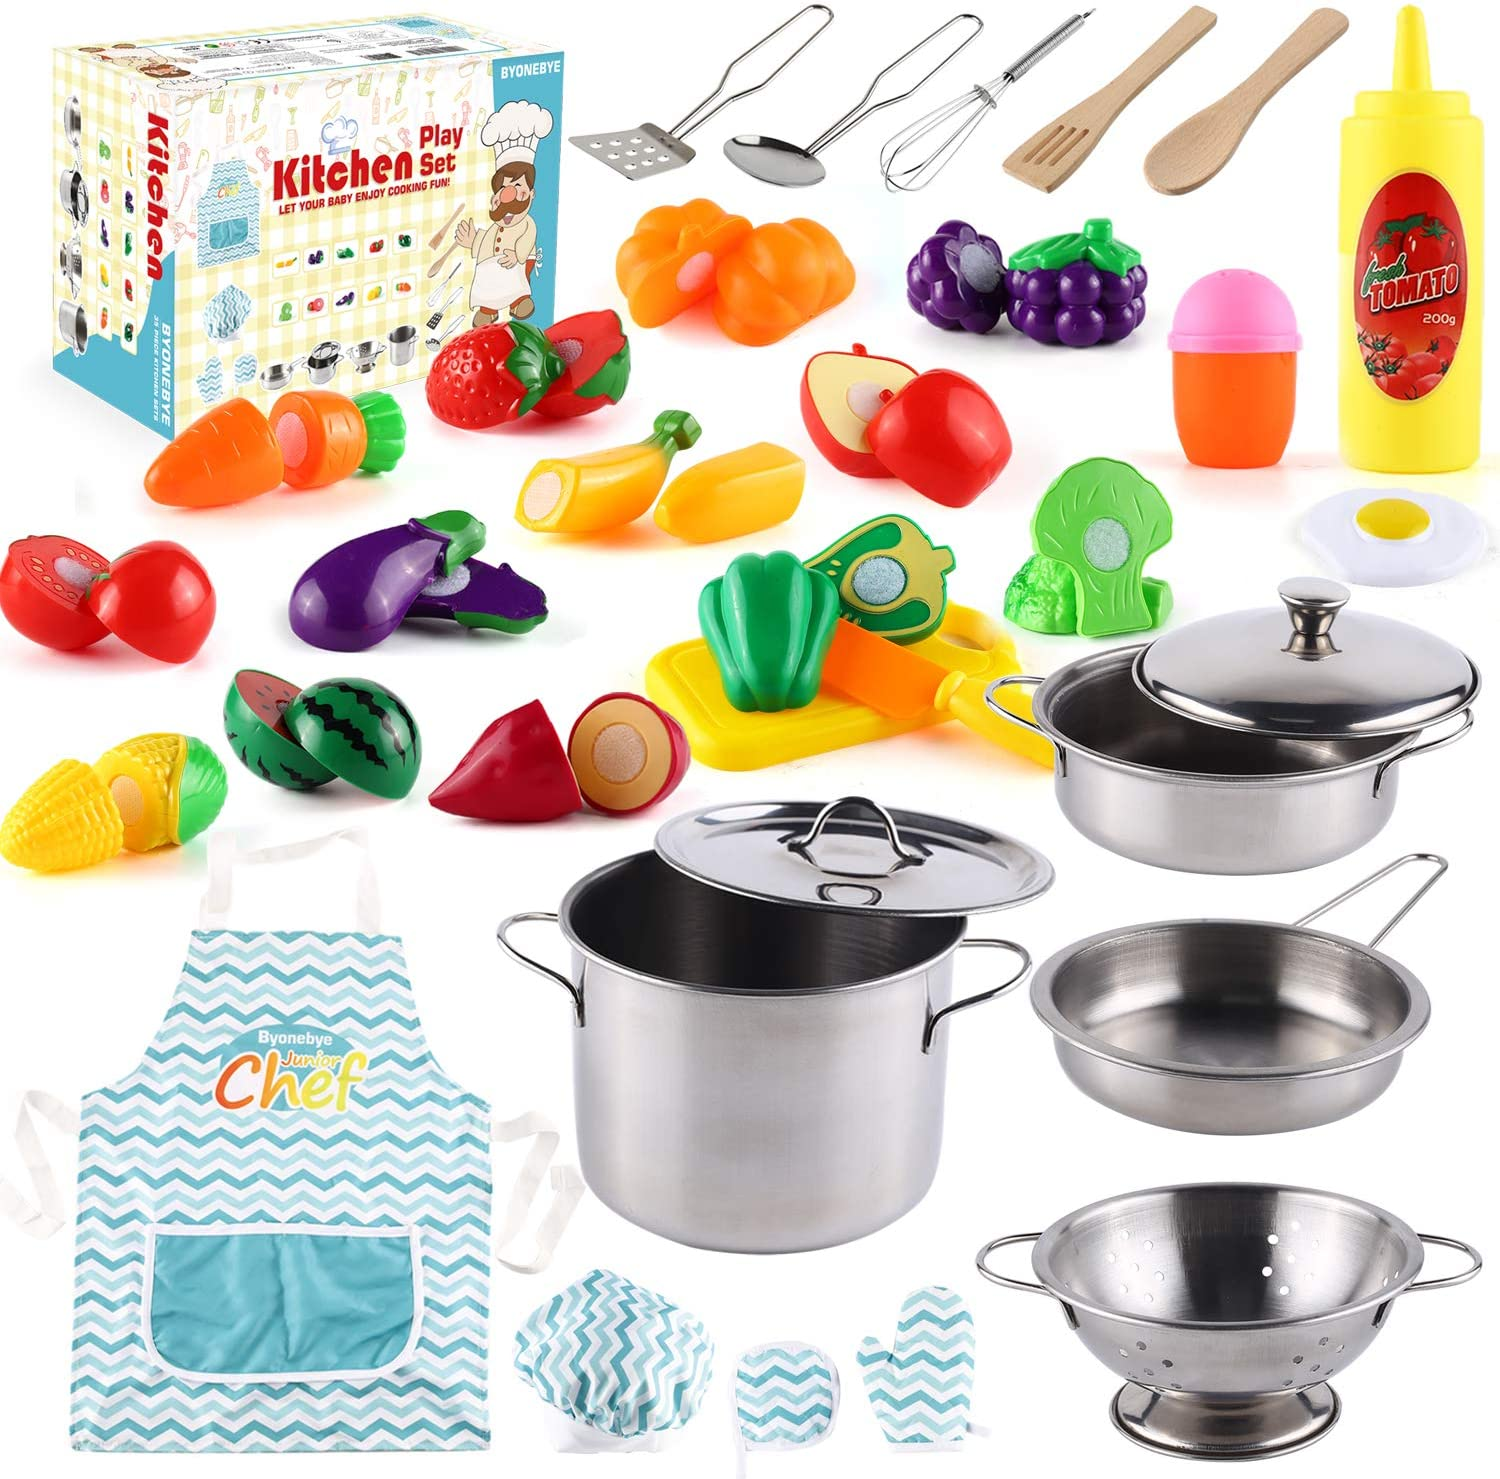 35 Pcs Kitchen Pretend Play Accessories Toys,Cooking Set with Stainless Steel Cookware Pots and Pans Set,Cooking Utensils,Apron,Chef Hat,and Cutting Play Food for Kids,Educational Learning Tool